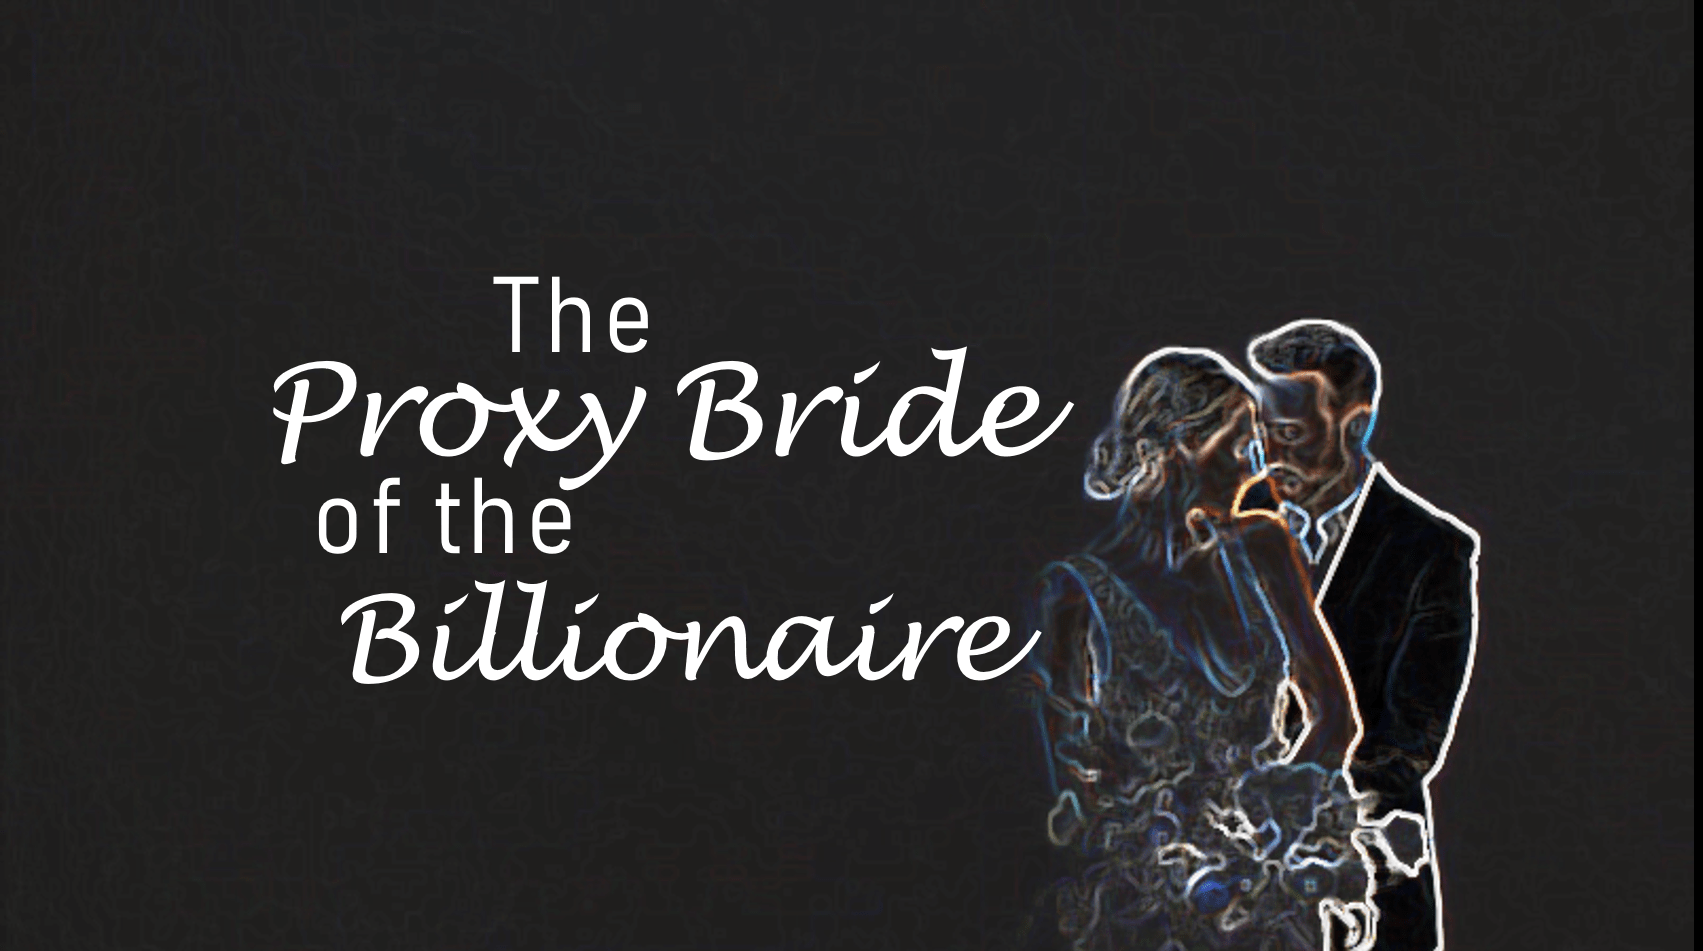 The Proxy Bride of the Billionaire Novel Cover Image